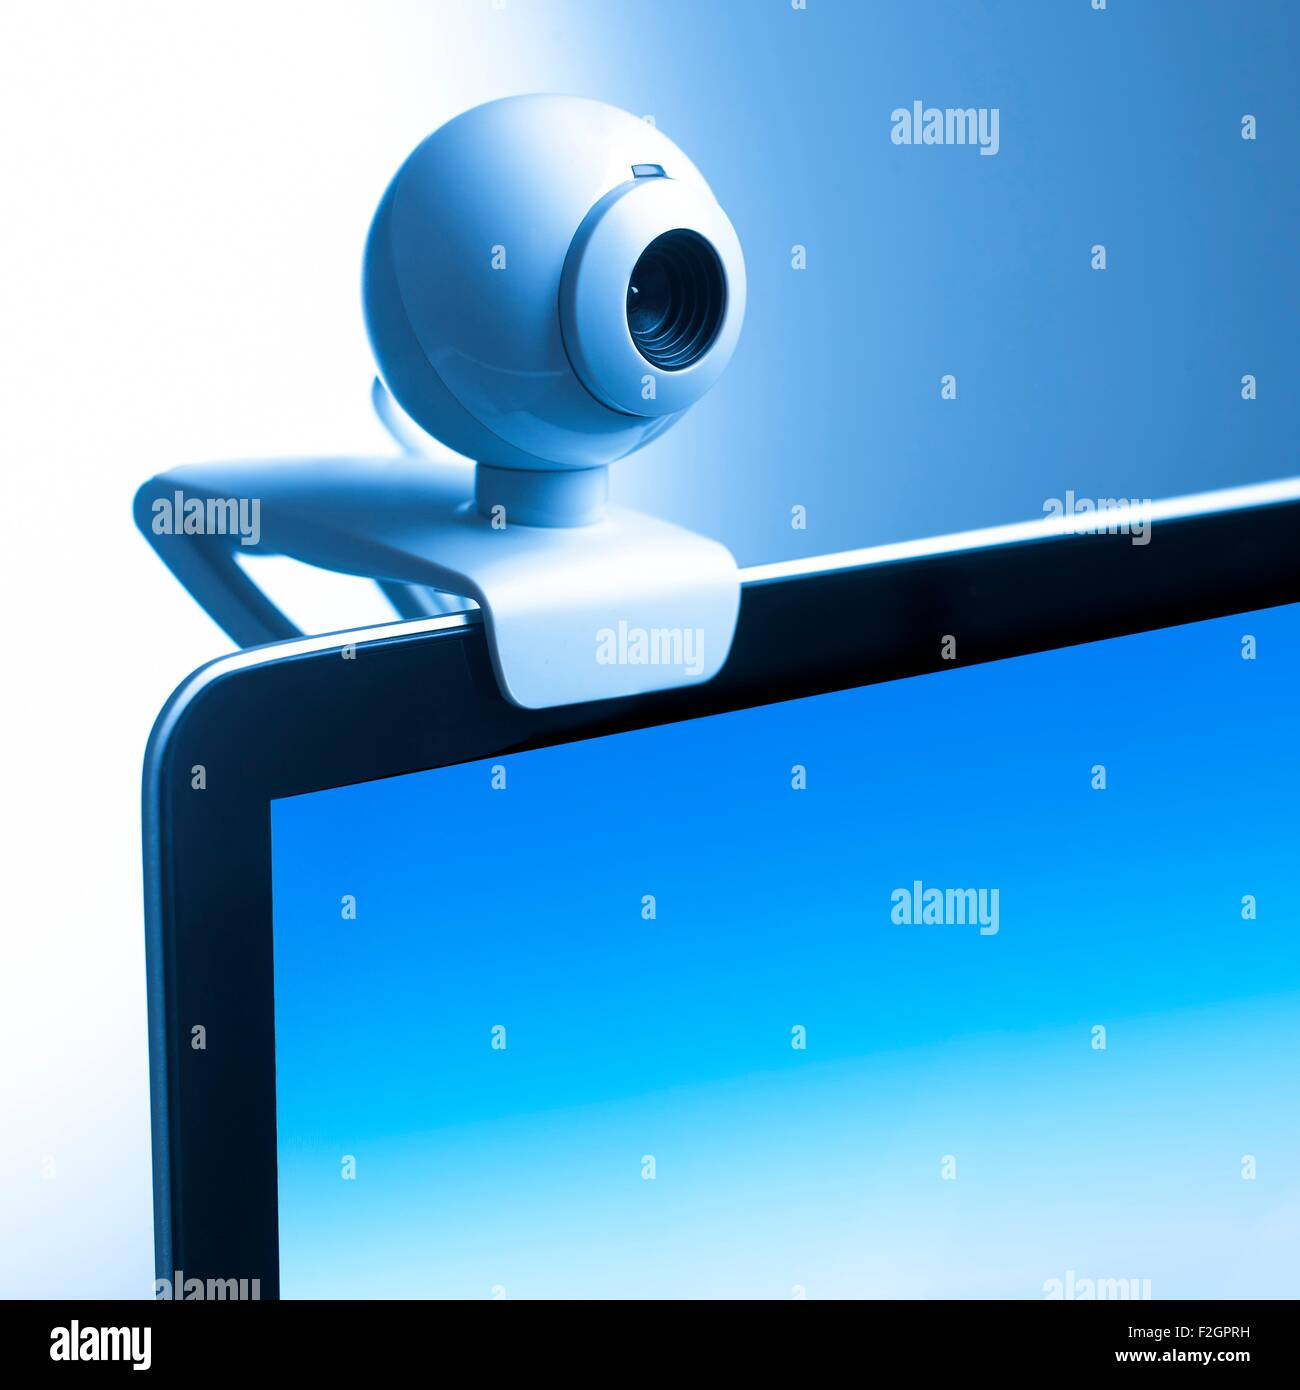 Webcam on computer monitor - Stock Image